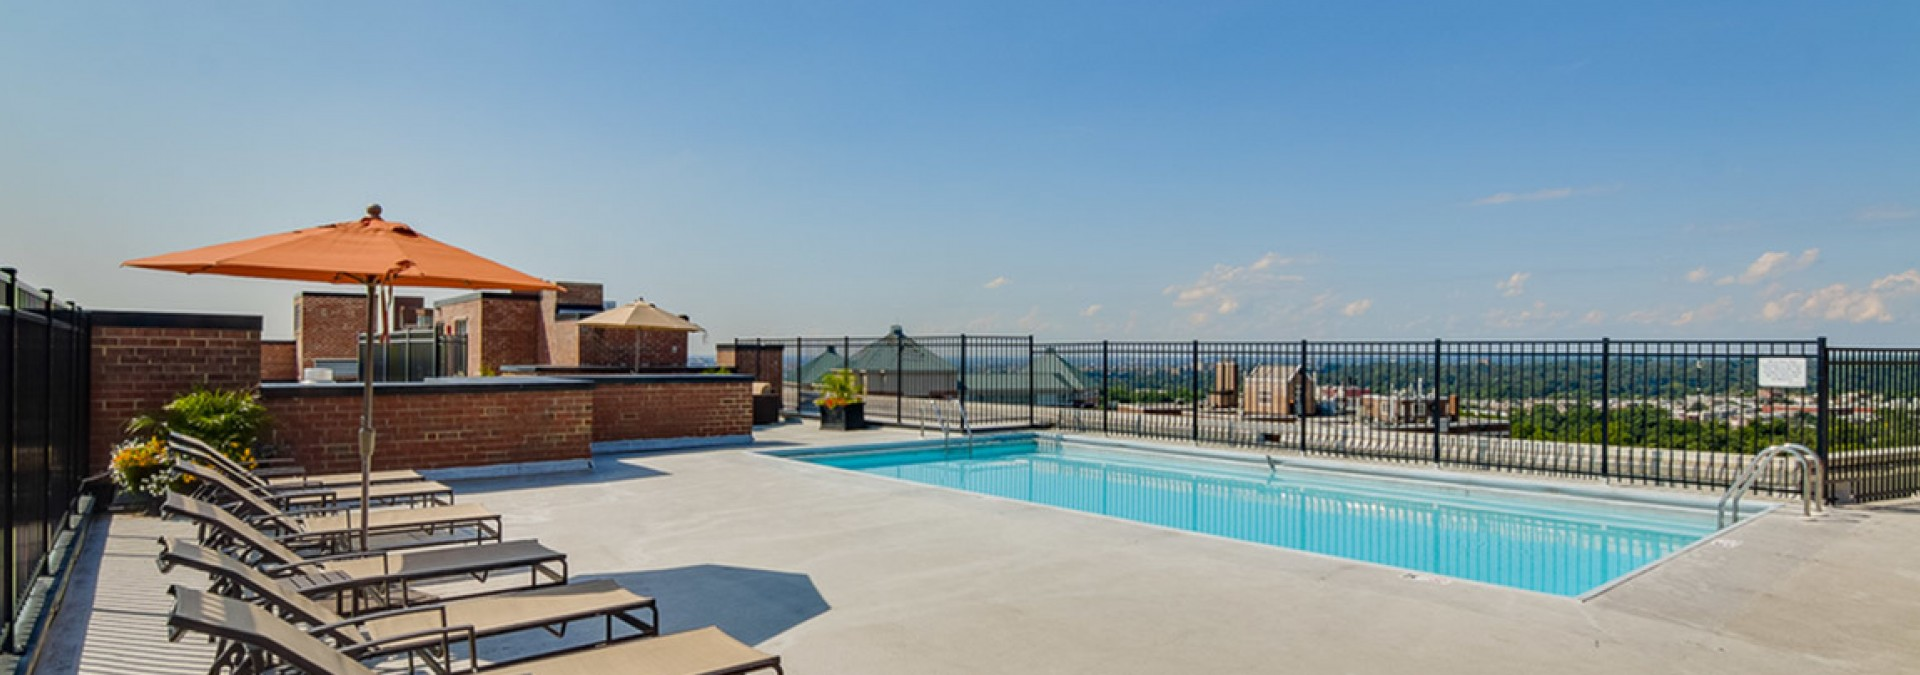 Resort Style Pool | Apartments Near Johns Hopkins | The Social North Charles